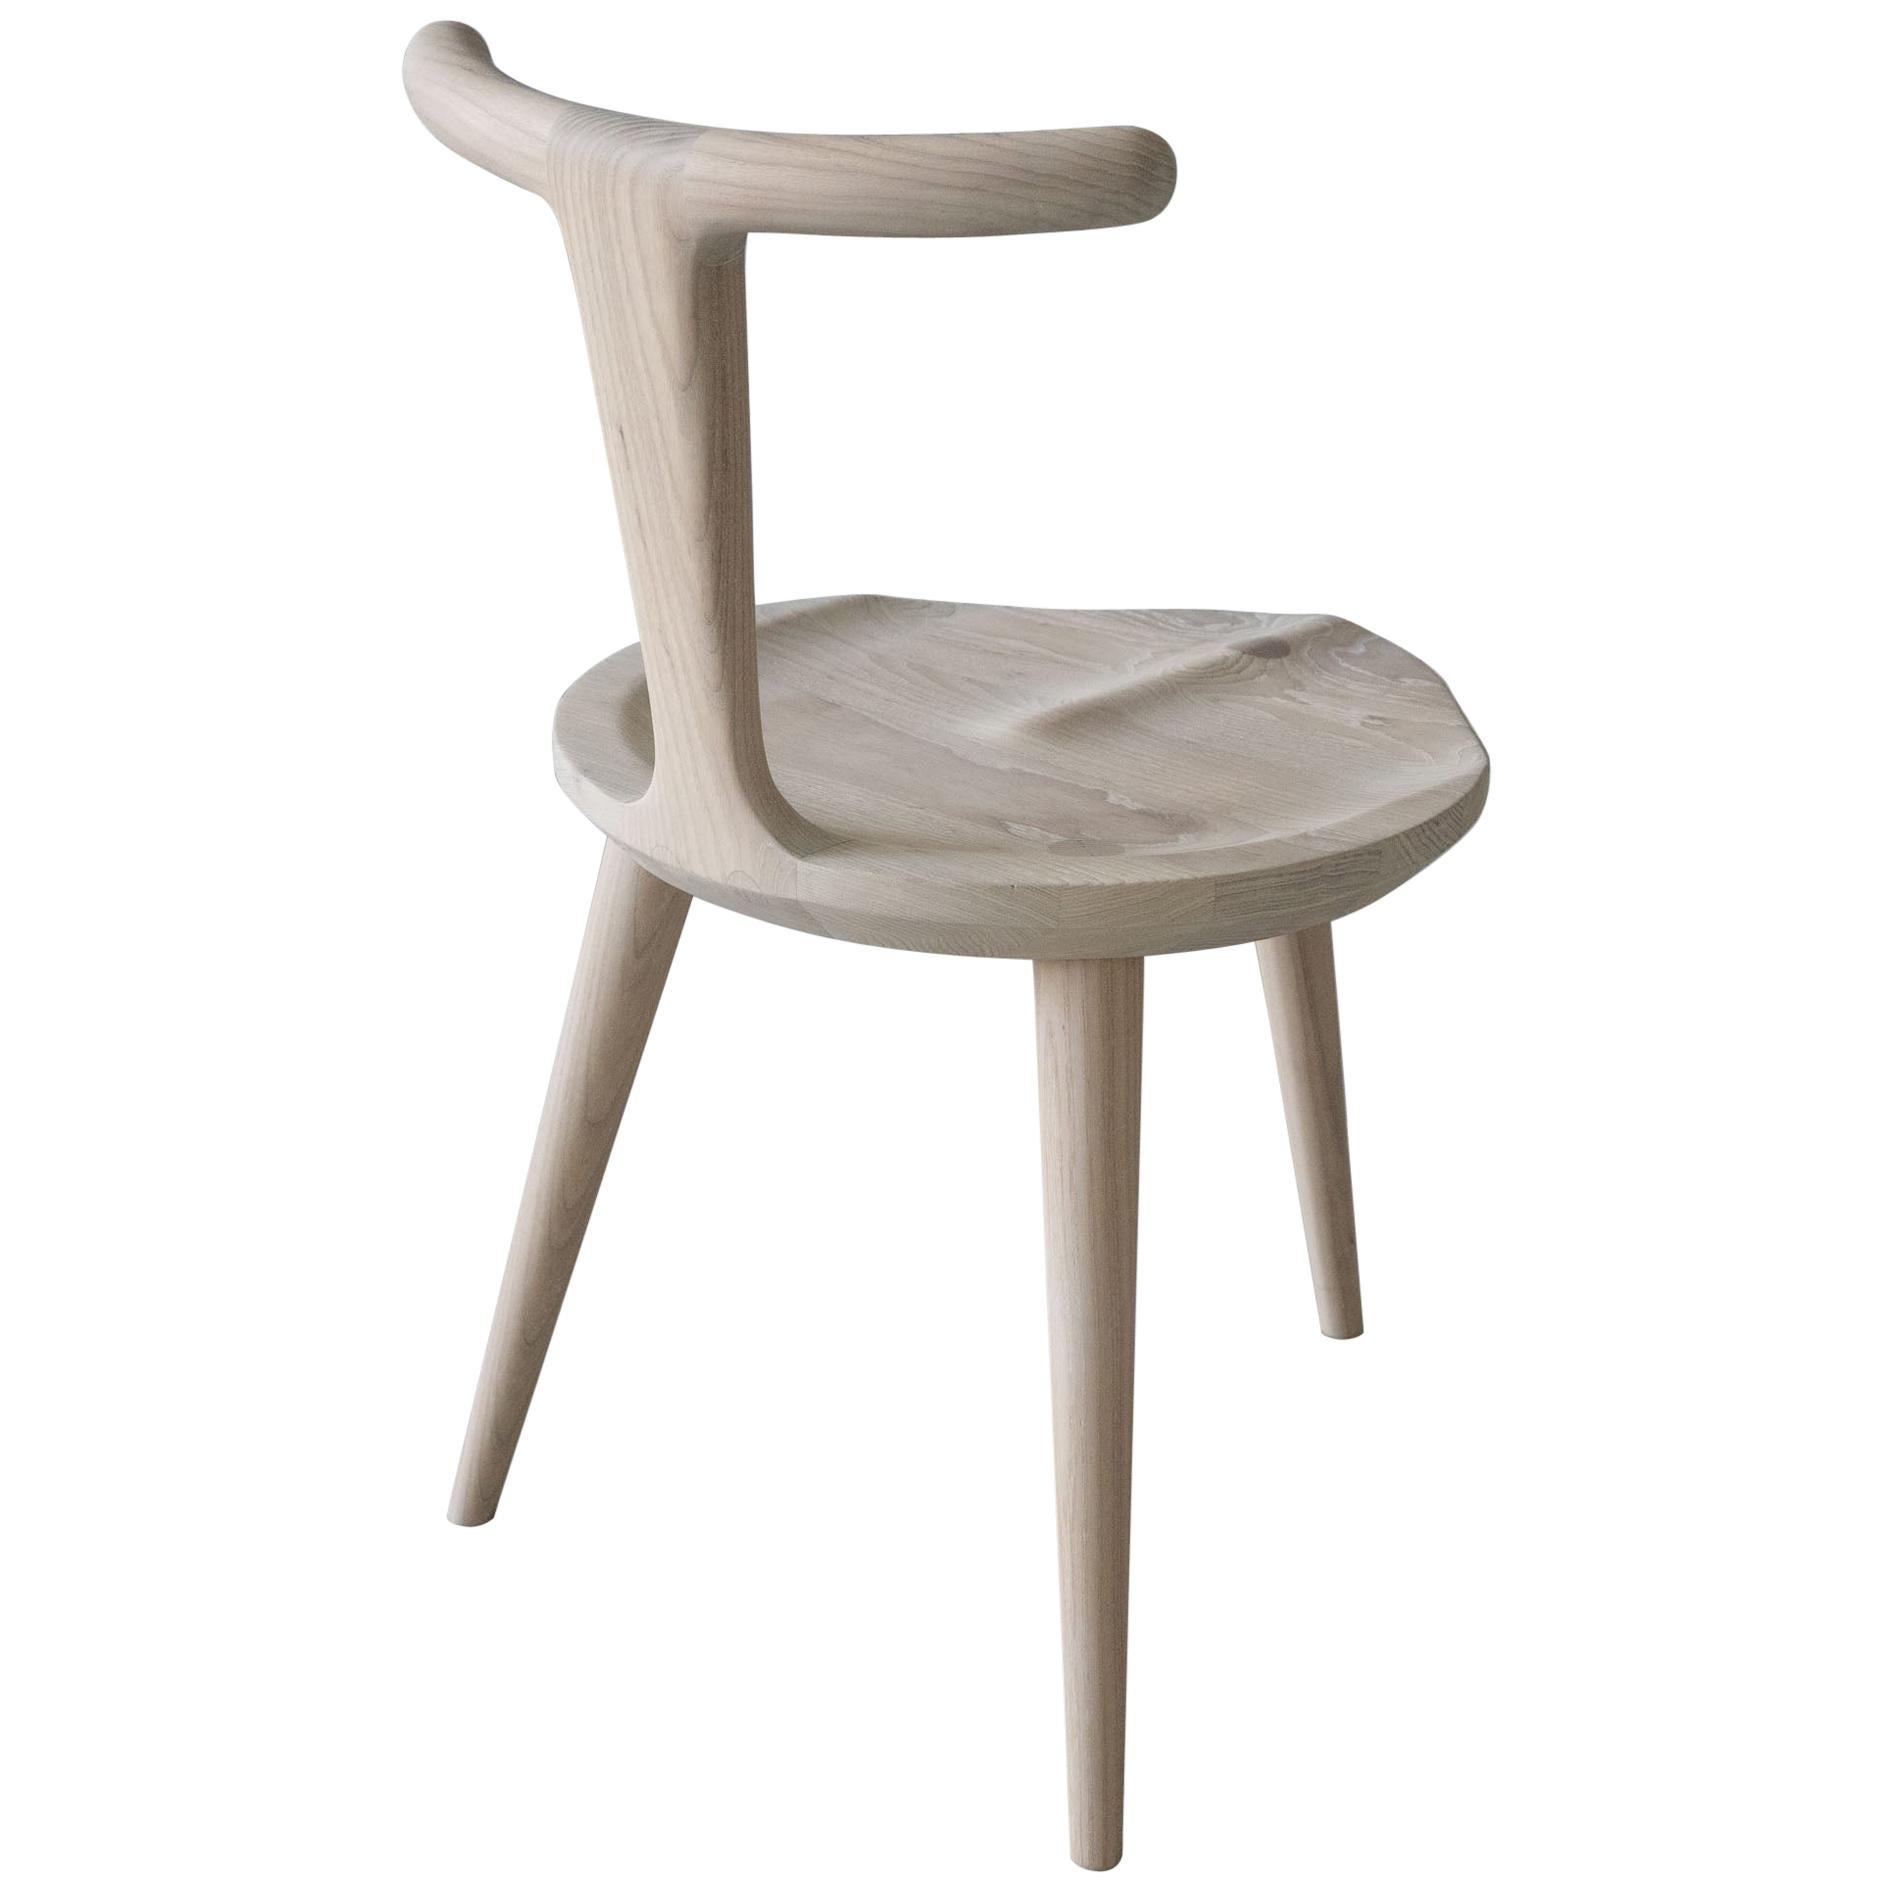 Oxbend Chair 3 Legs, Dining Seat in White Ash Wood by Fernweh Woodworking